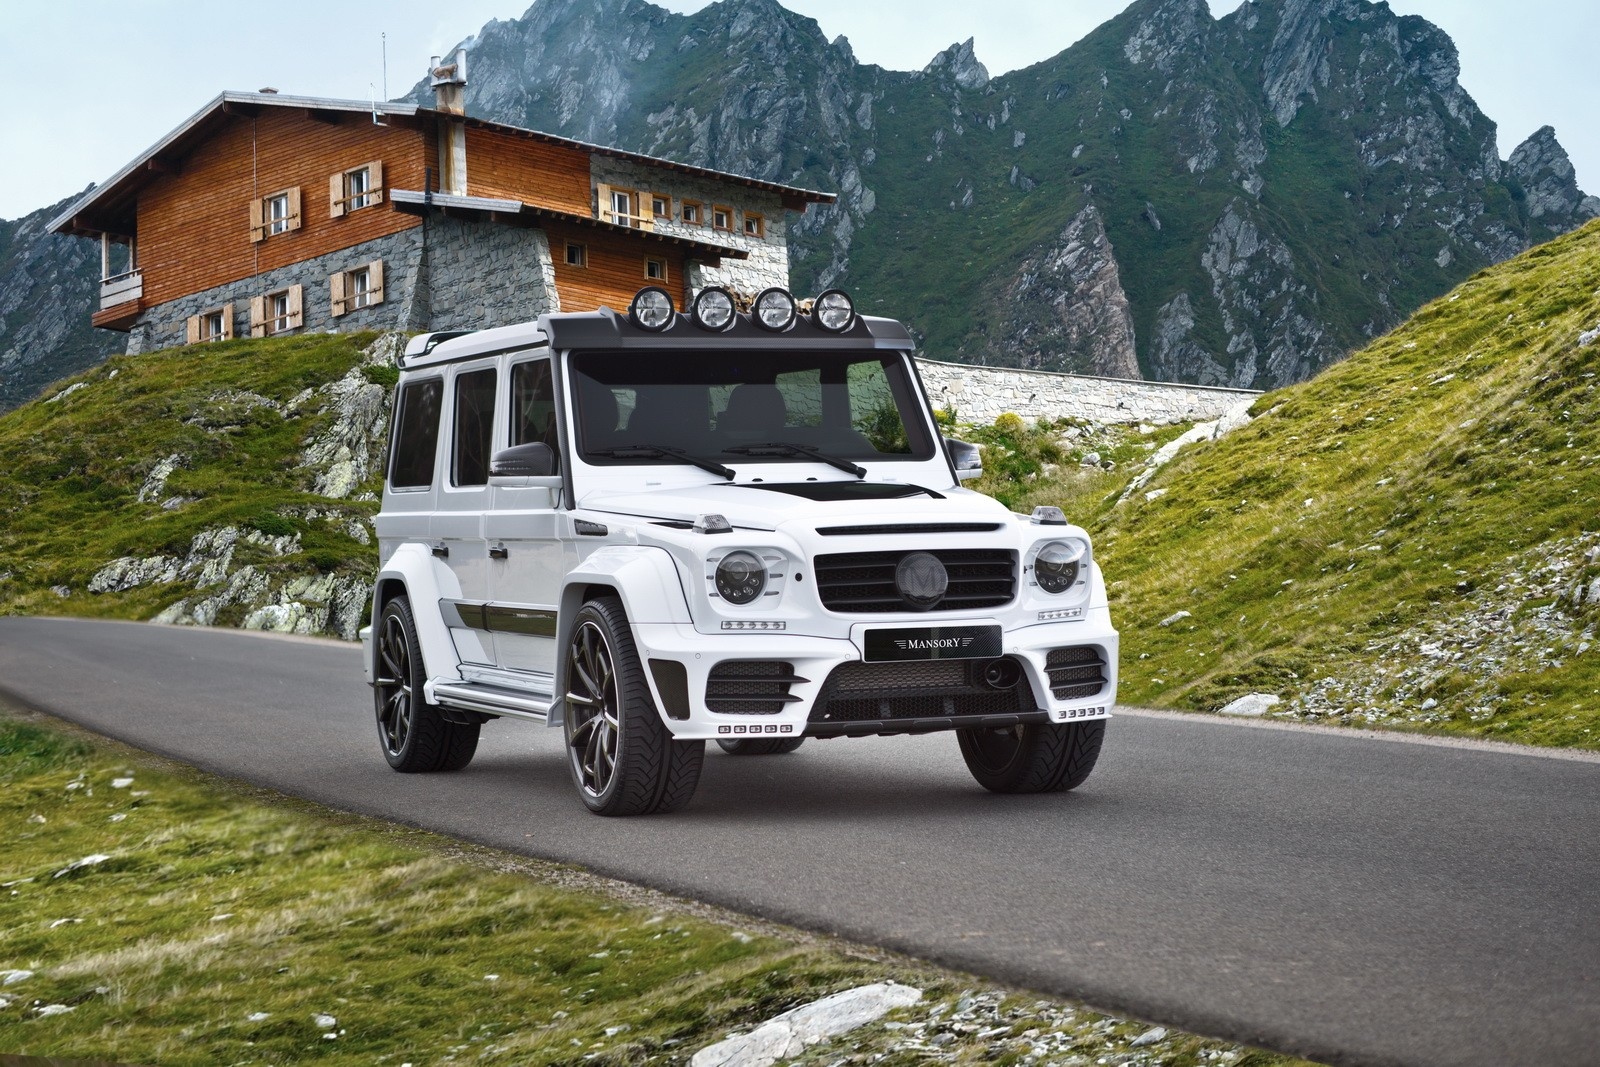 Mansory updates mercedes benz g63 amg gronos benzinsider for Mercedes benz g 63